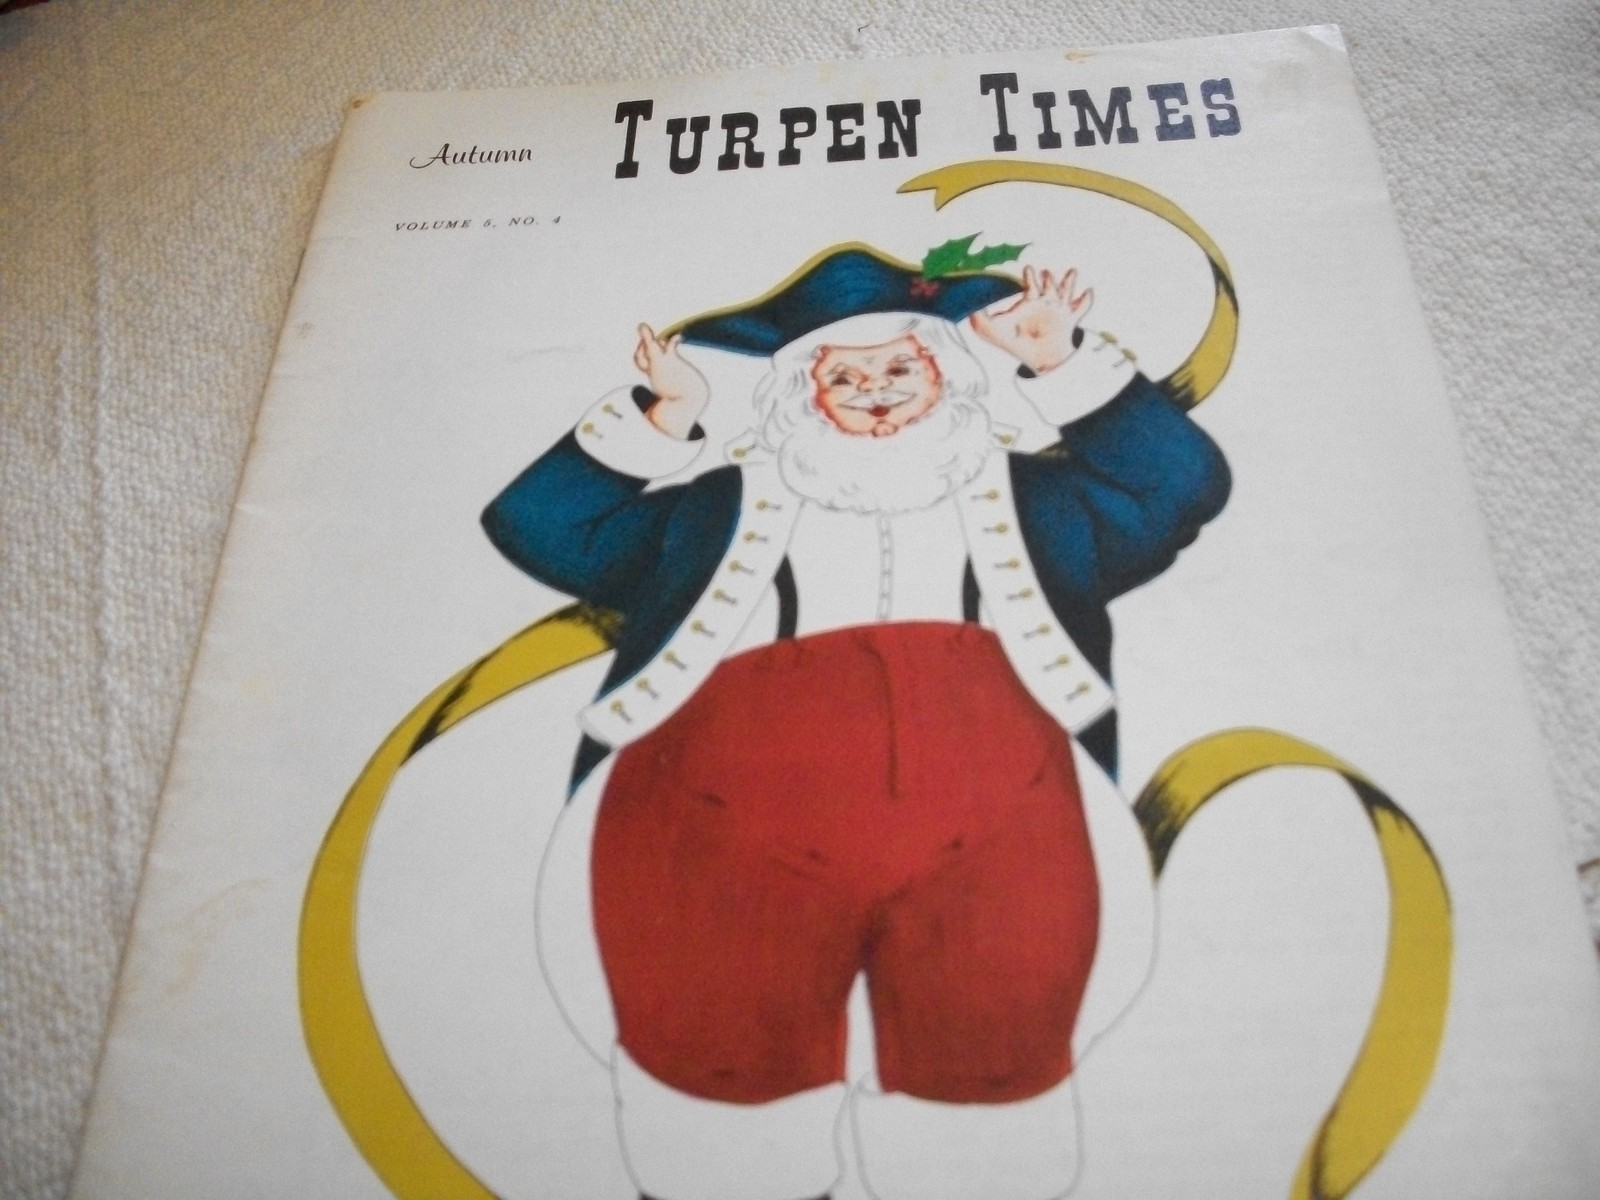 Primary image for Turpen Times Art Books: Autumn & Summer 1975